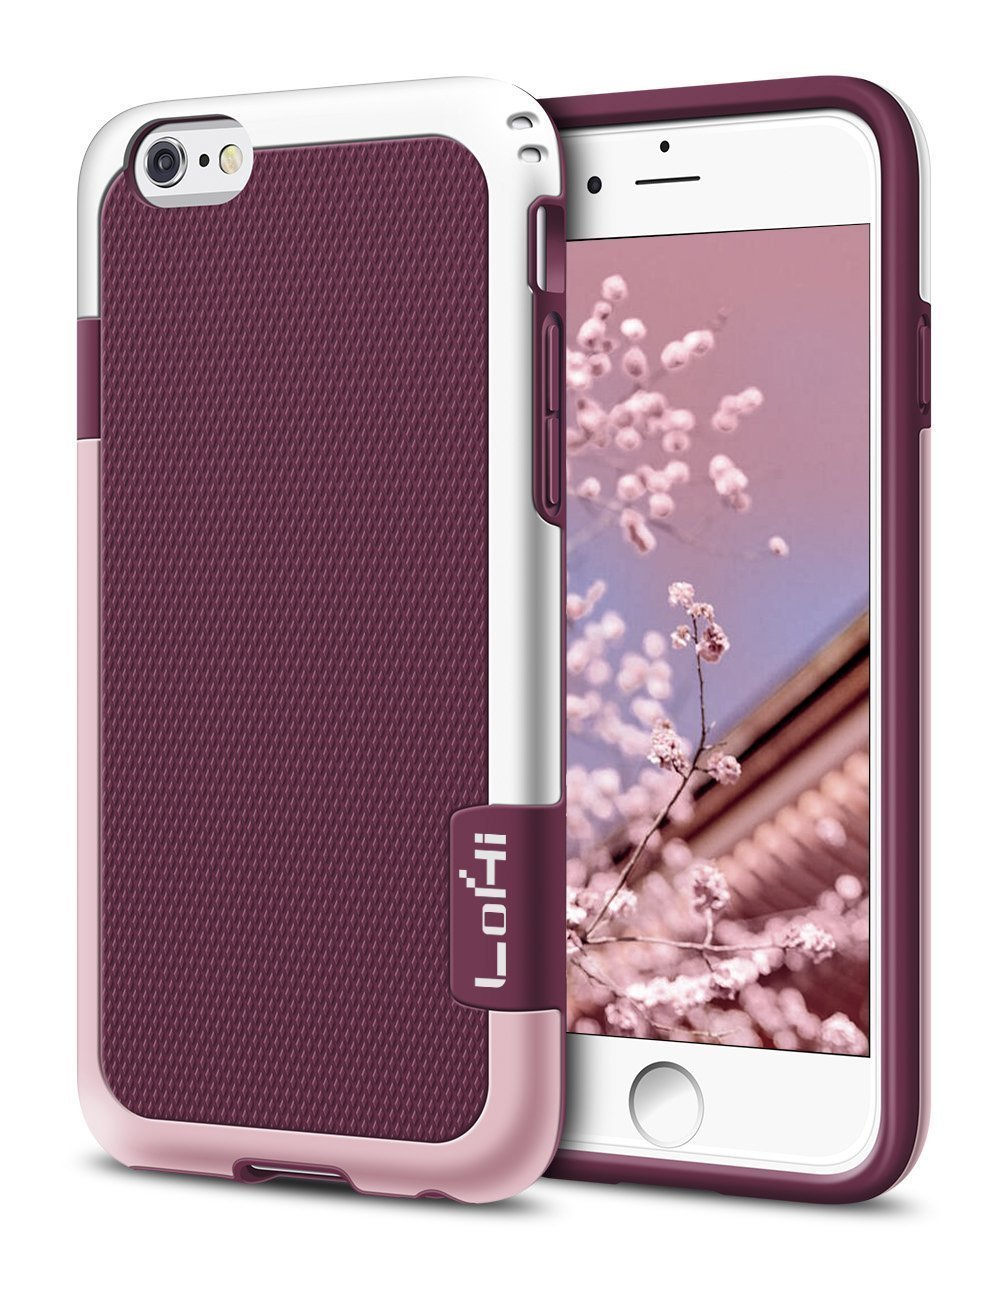 iPhone 6S Plus Case, LoHi iPhone 6 Plus Case Hybrid Impact 3 Color Shockproof Rugged Case Soft TPU & Hard PC Bumper [Extra Front Raised Lip] Anti-slip Cover for Apple iphone 6s Plus 5.5 Inch - Red